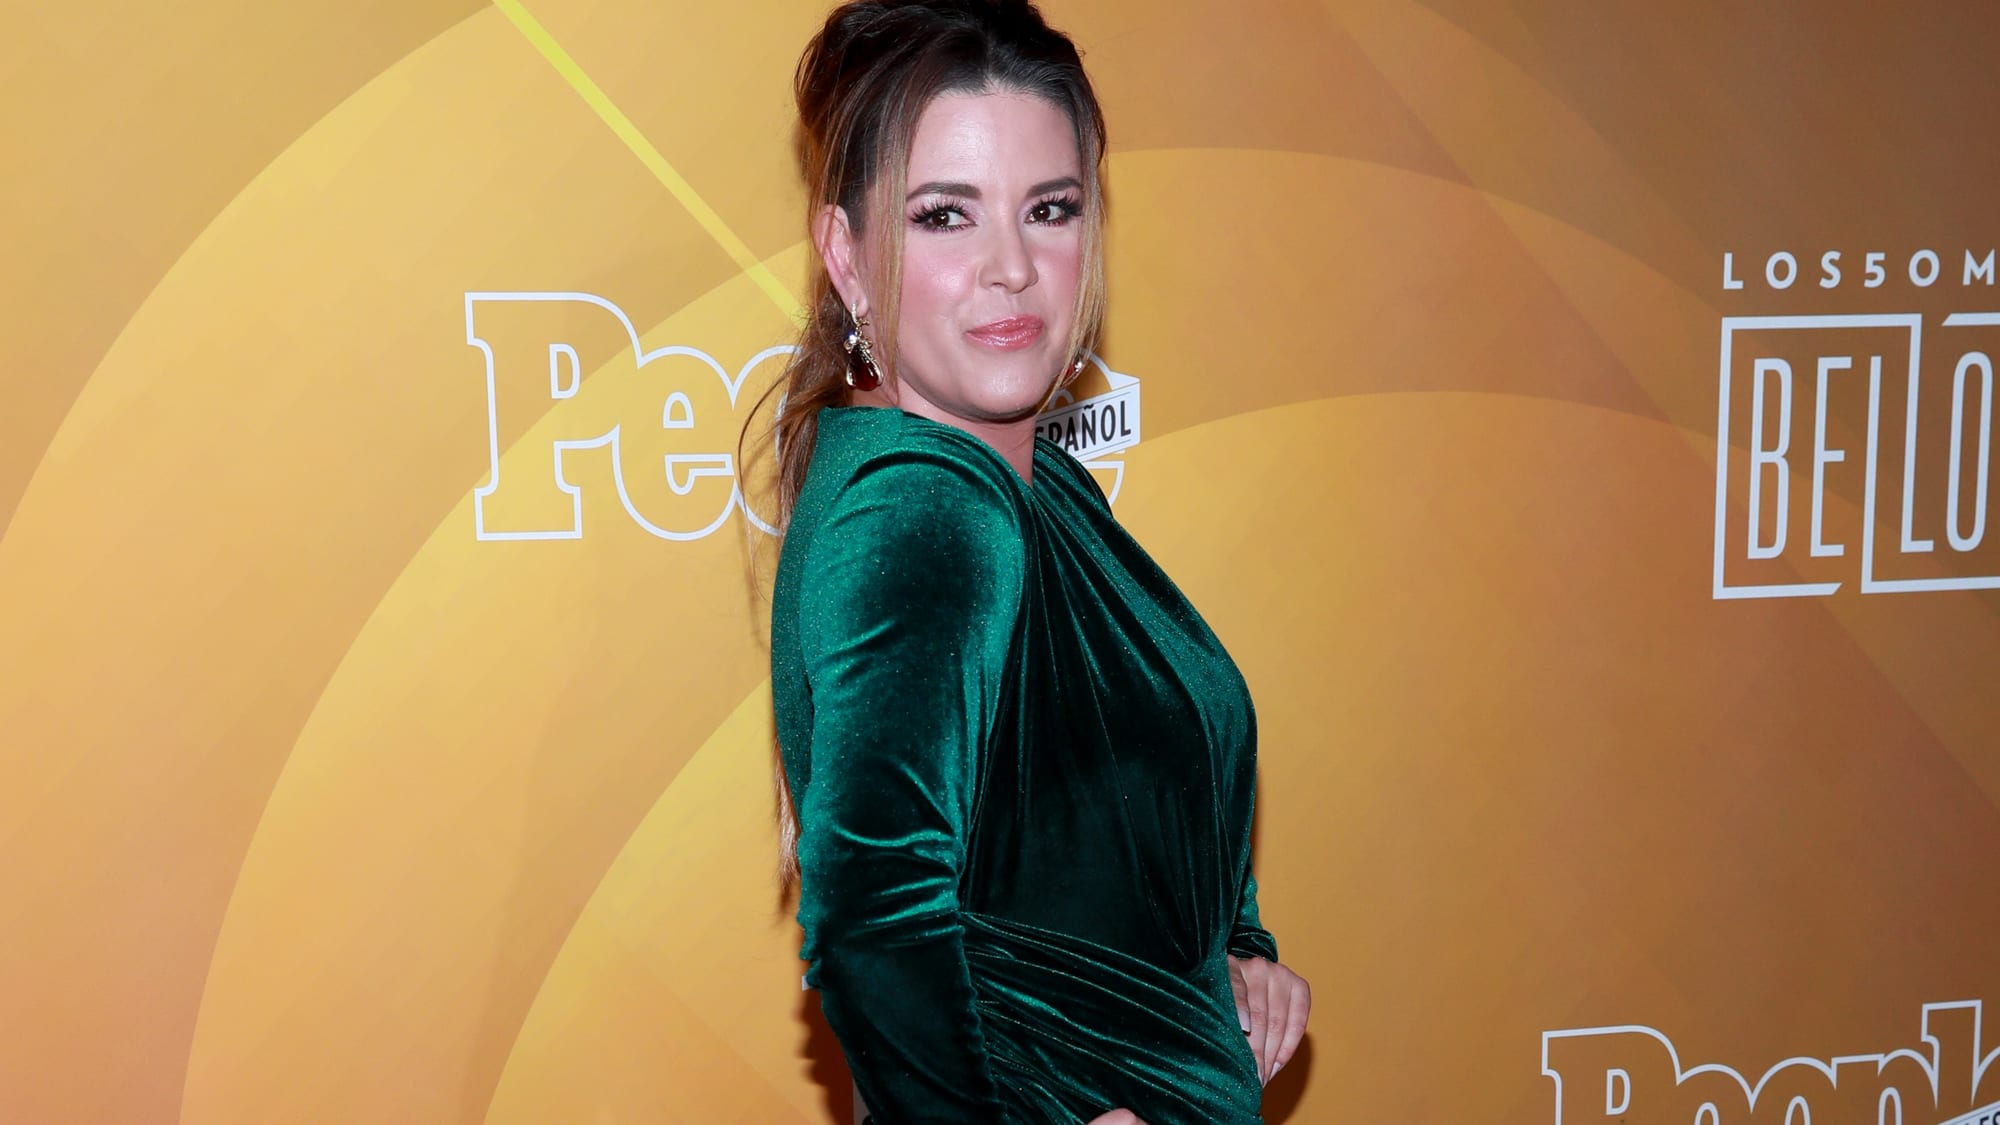 """WEST HOLLYWOOD, CALIFORNIA - MAY 23: Alicia Machado attends People En Español's """"Most Beautiful"""" Celebration at 1 Hotel West Hollywood on May 23, 2019 in West Hollywood, California. (Photo by Rich Fury/Getty Images)"""